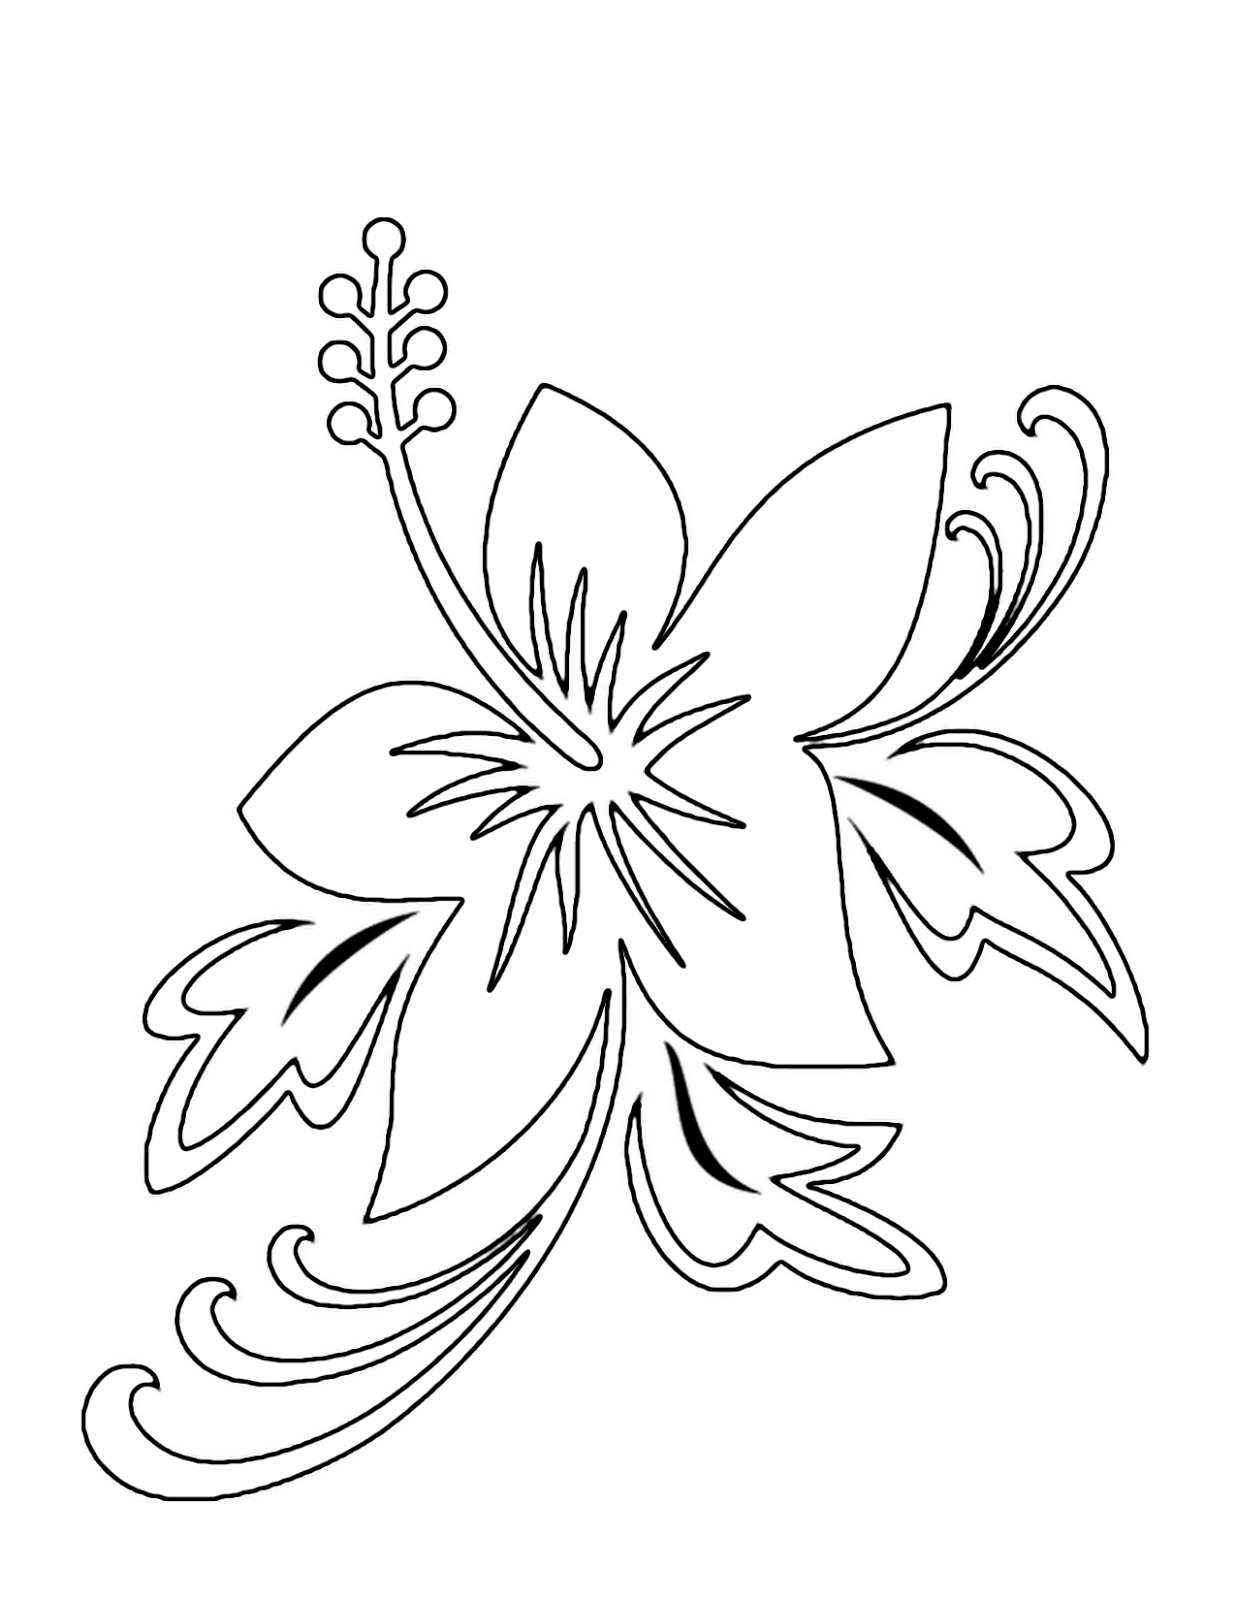 coloring pages of a flower - photo#36